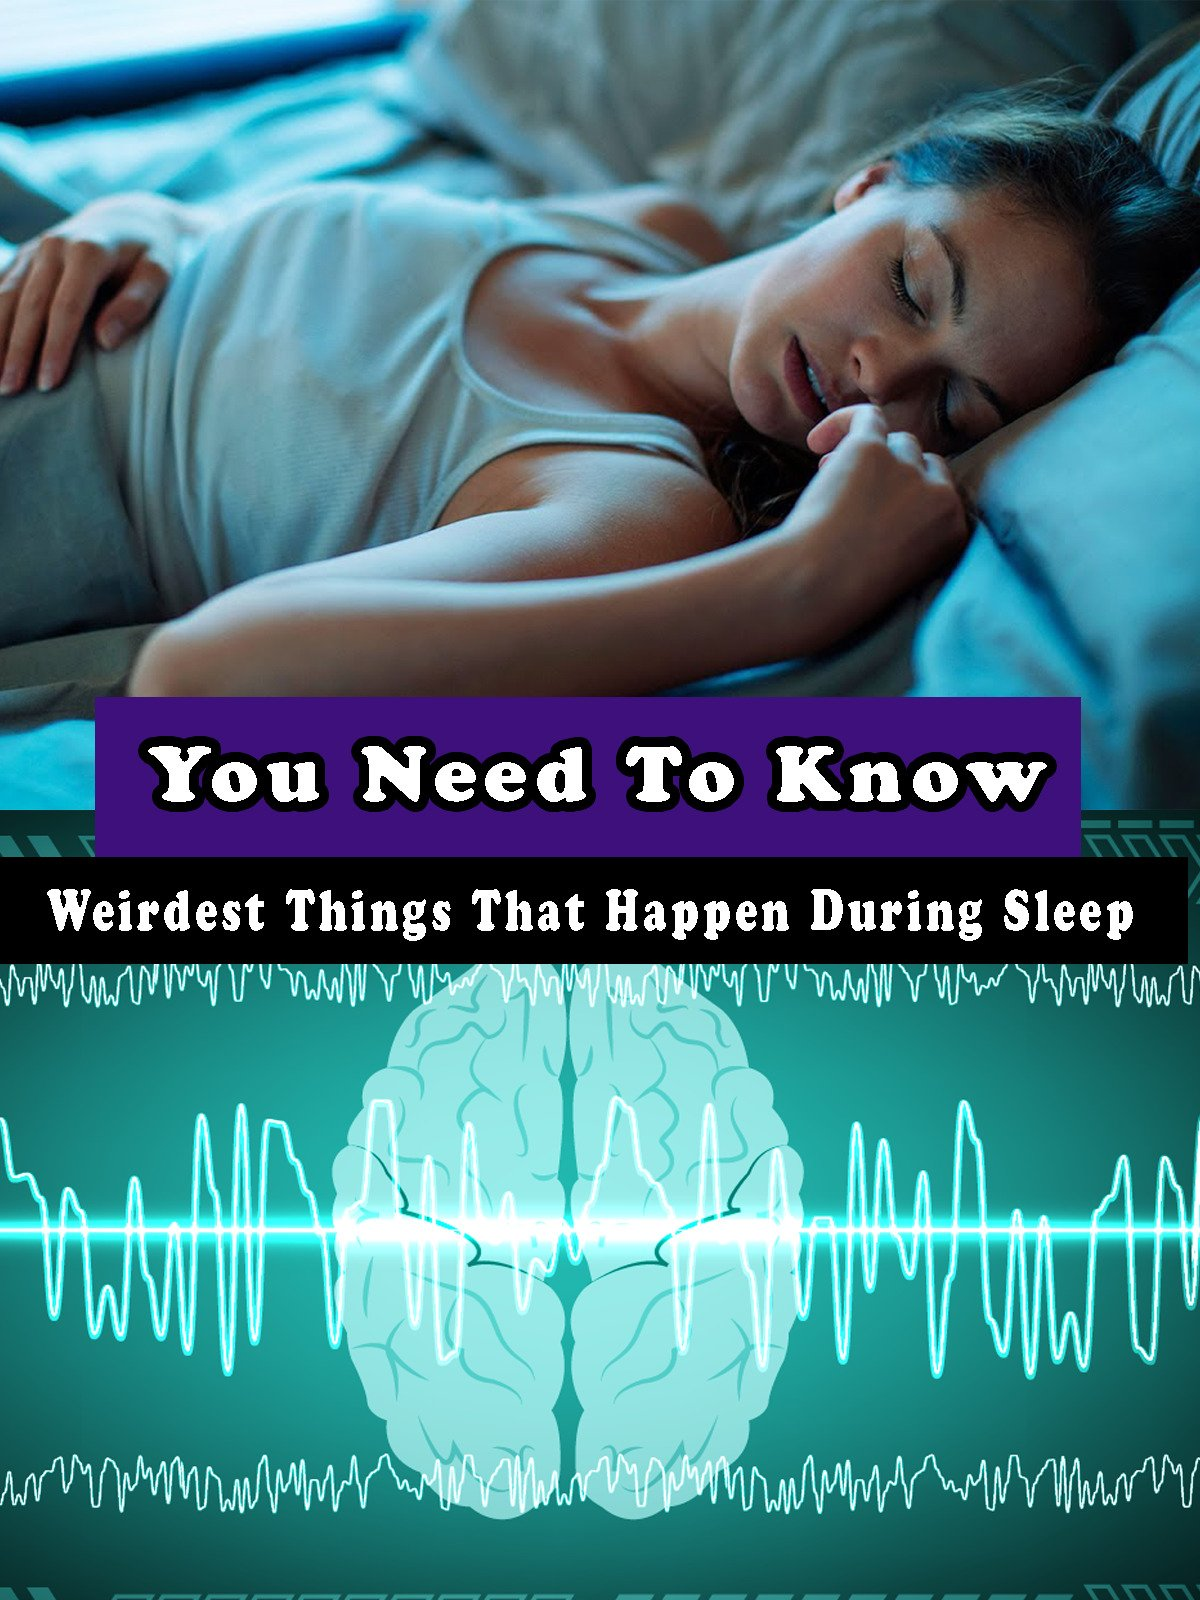 You Need To Know - Weirdest Things That Happen During Sleep